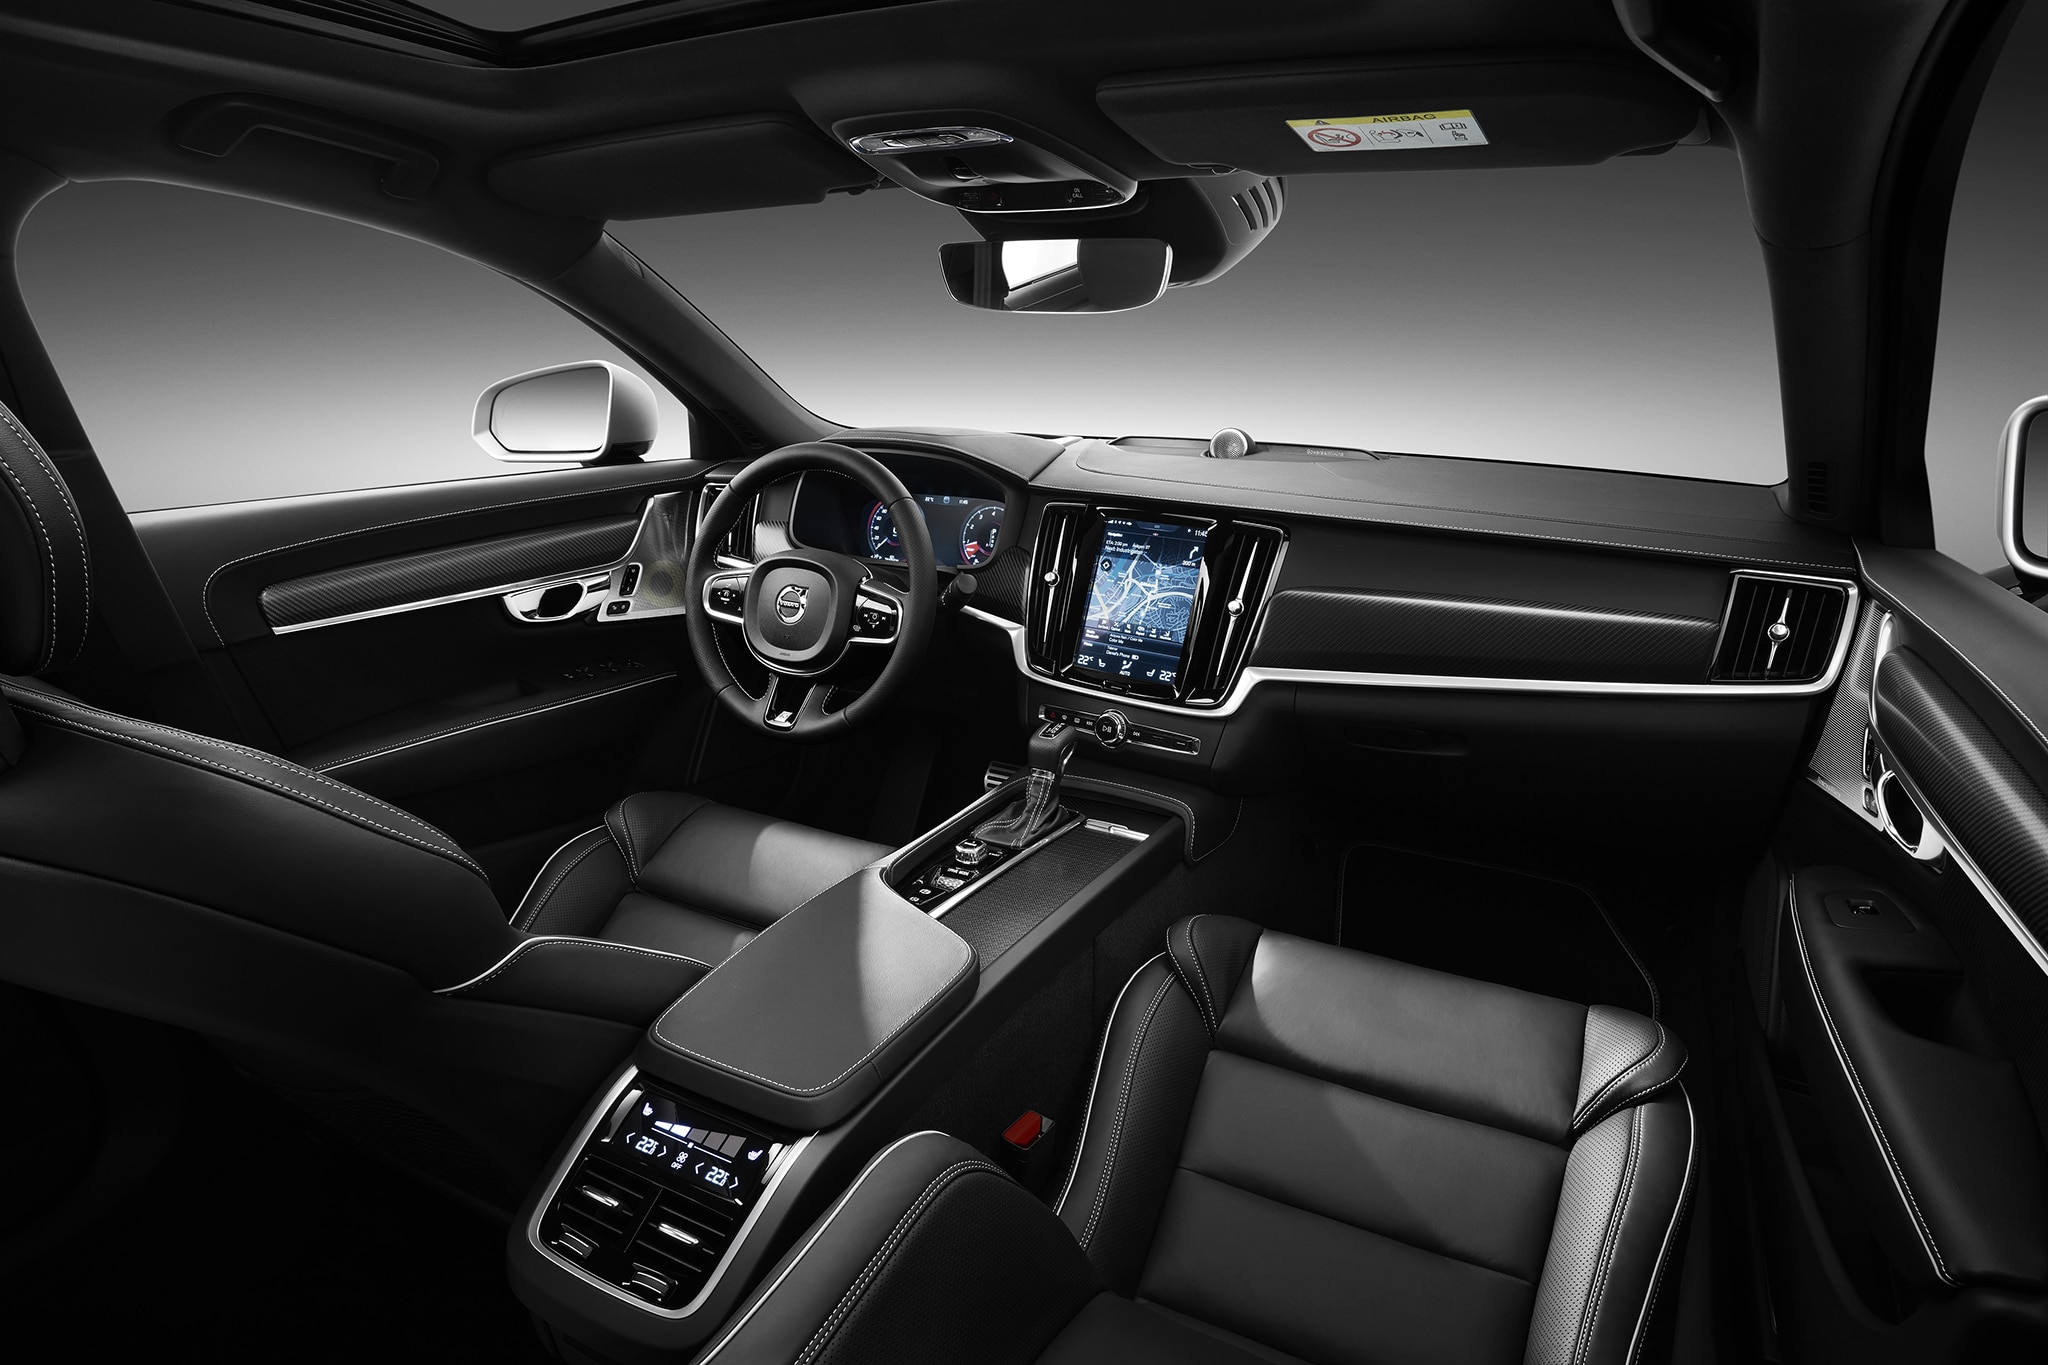 2018 volvo s90 interior. fine 2018 show more for 2018 volvo s90 interior